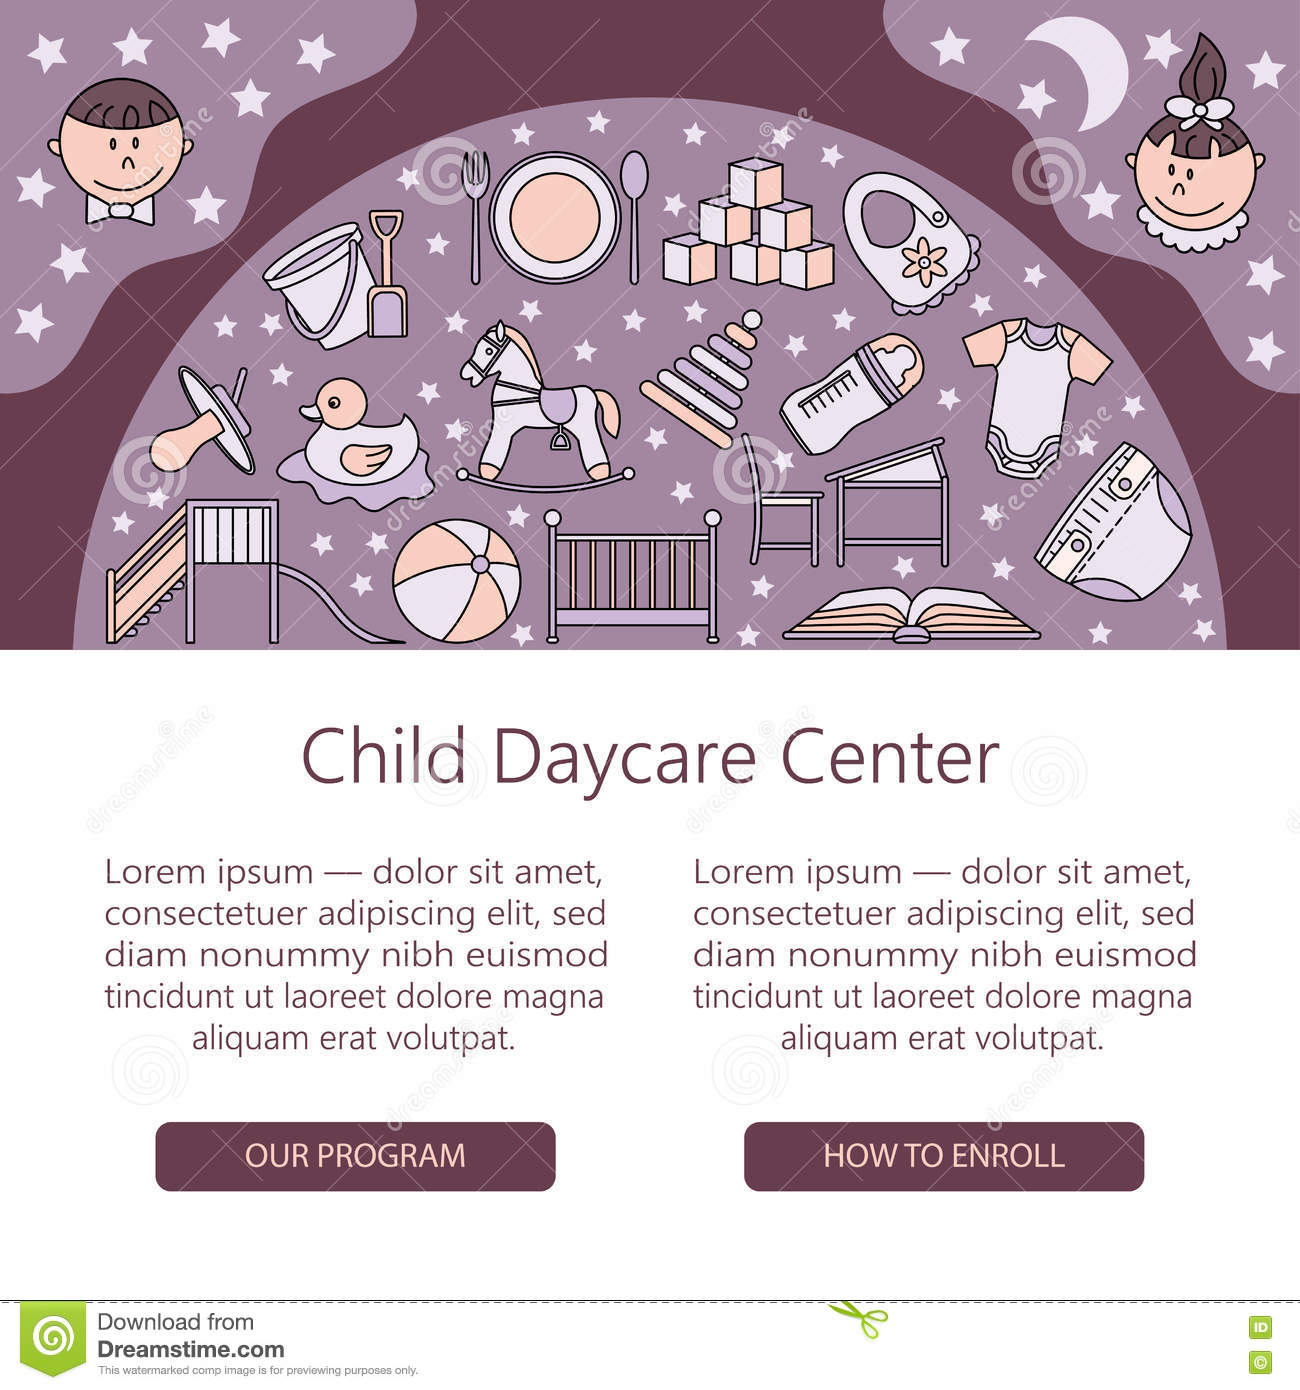 Baby cribs for daycare centers - Child And Baby Care Center Web Or Card Template